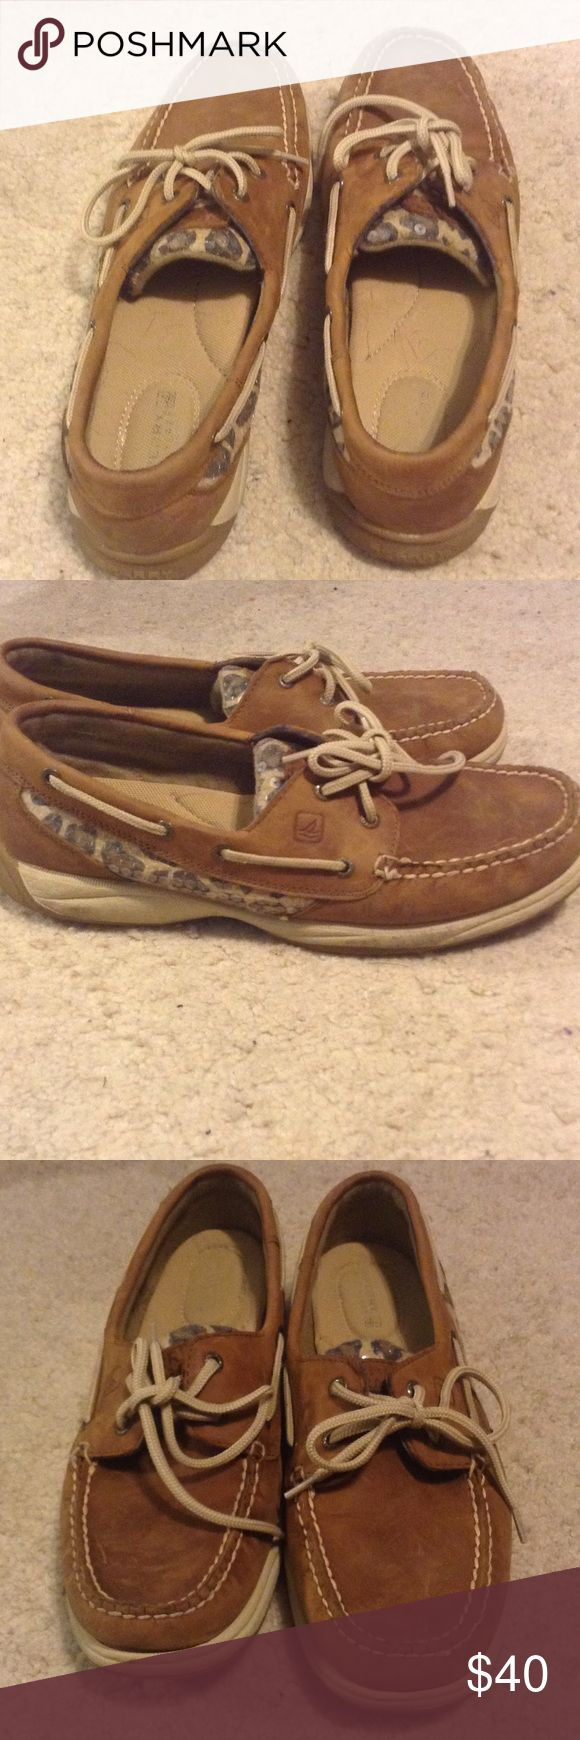 Sperry boat shoes Brown boat shoes with cheetah print accent on the side. Worn bust still in good condition. Shoes Flats & Loafers